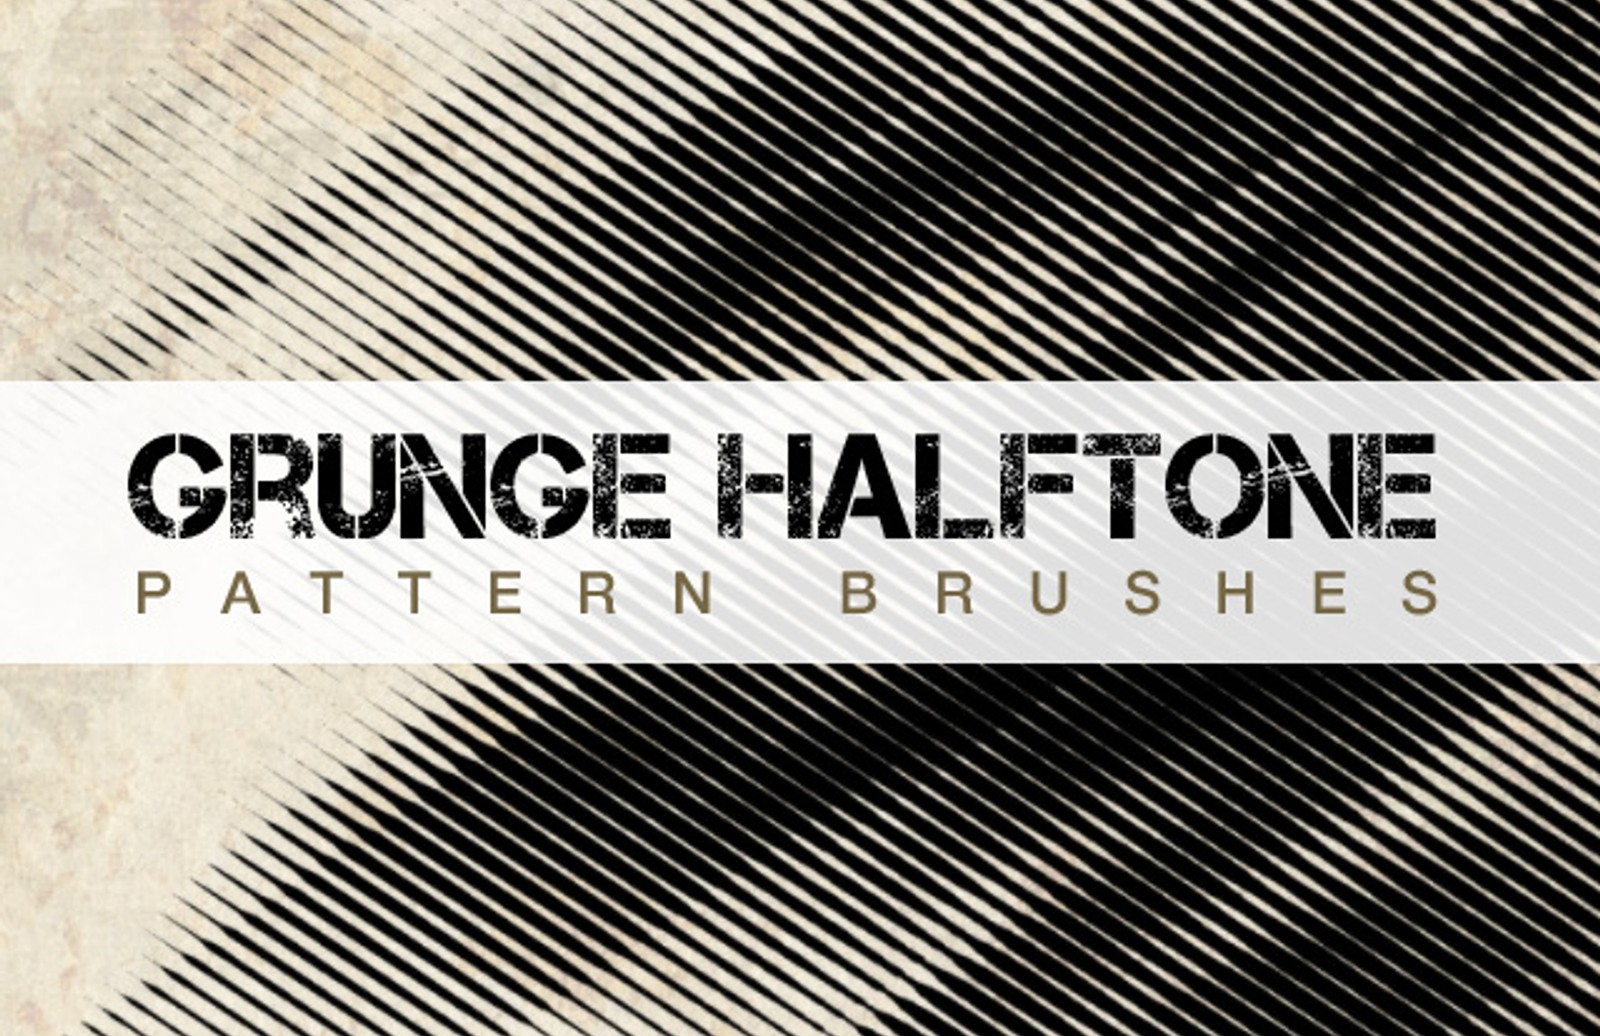 Grunge  Halftone  Brushes  Preview1